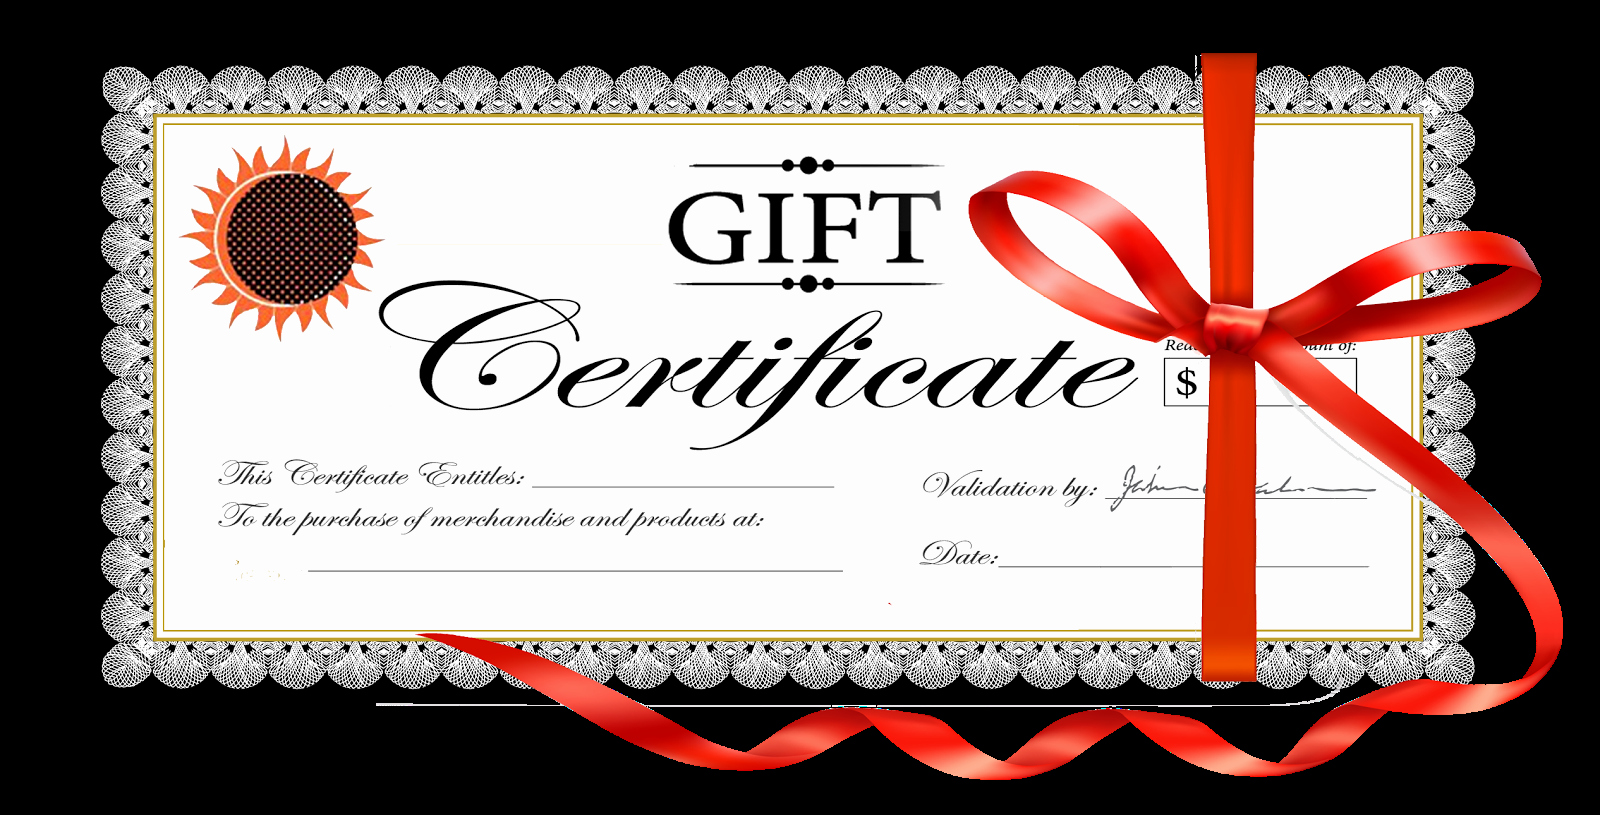 Gift Card Templates Free Printable Elegant 18 Gift Certificate Templates Excel Pdf formats